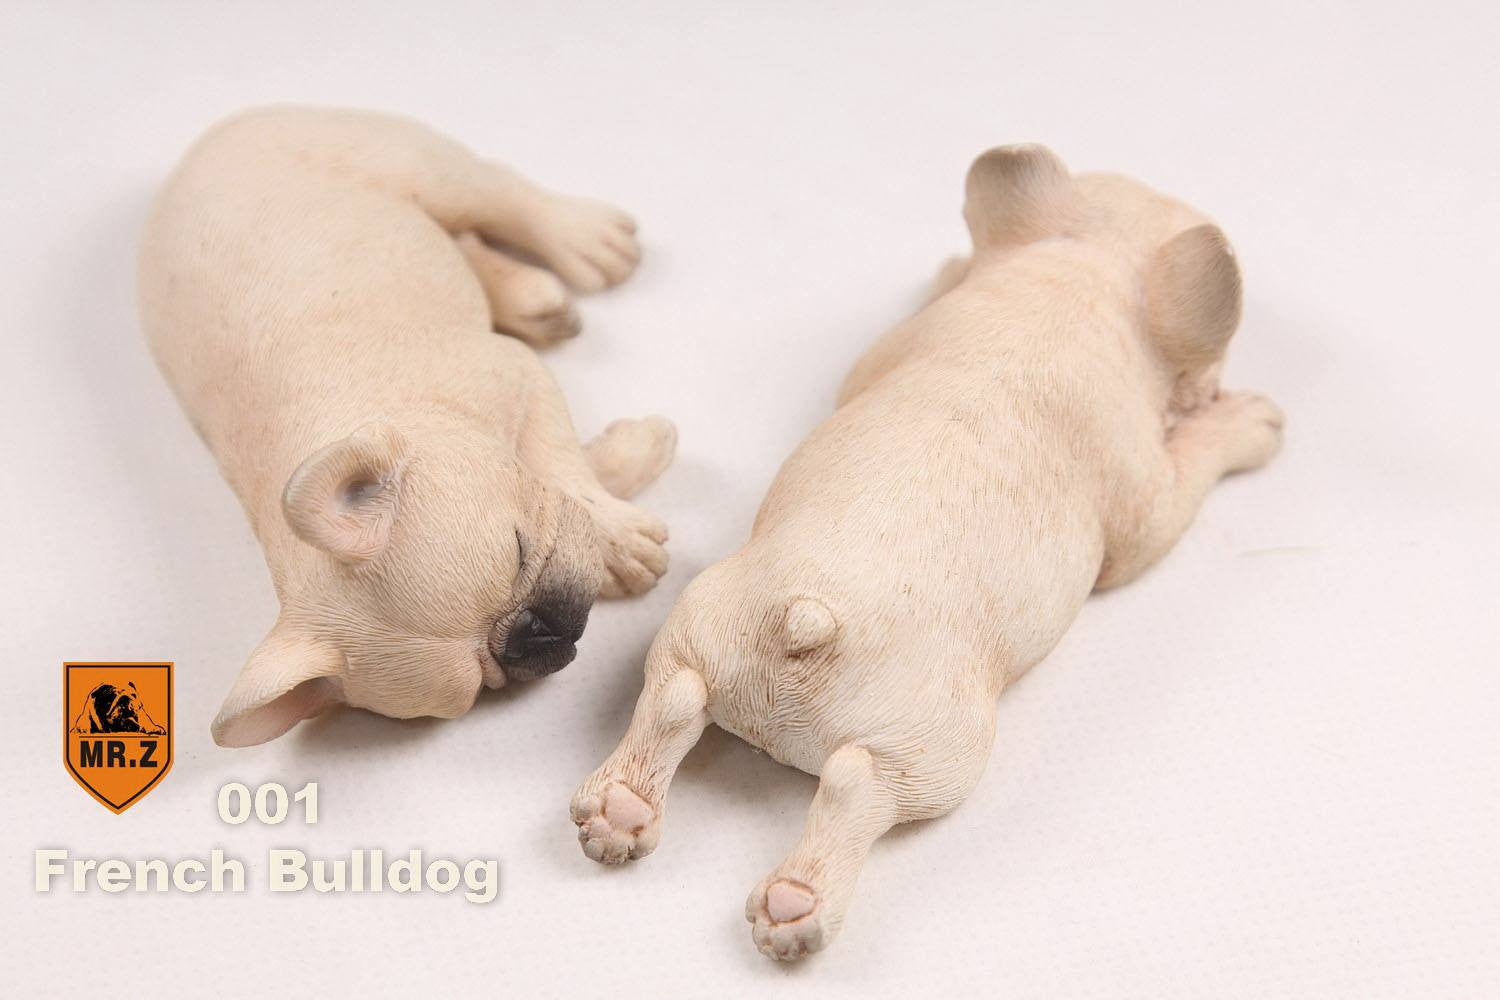 MR.Z - Real Animal Series No.9 - 1/6th Scale French Bulldog (Sleep Mode) 001-005 - Marvelous Toys - 6